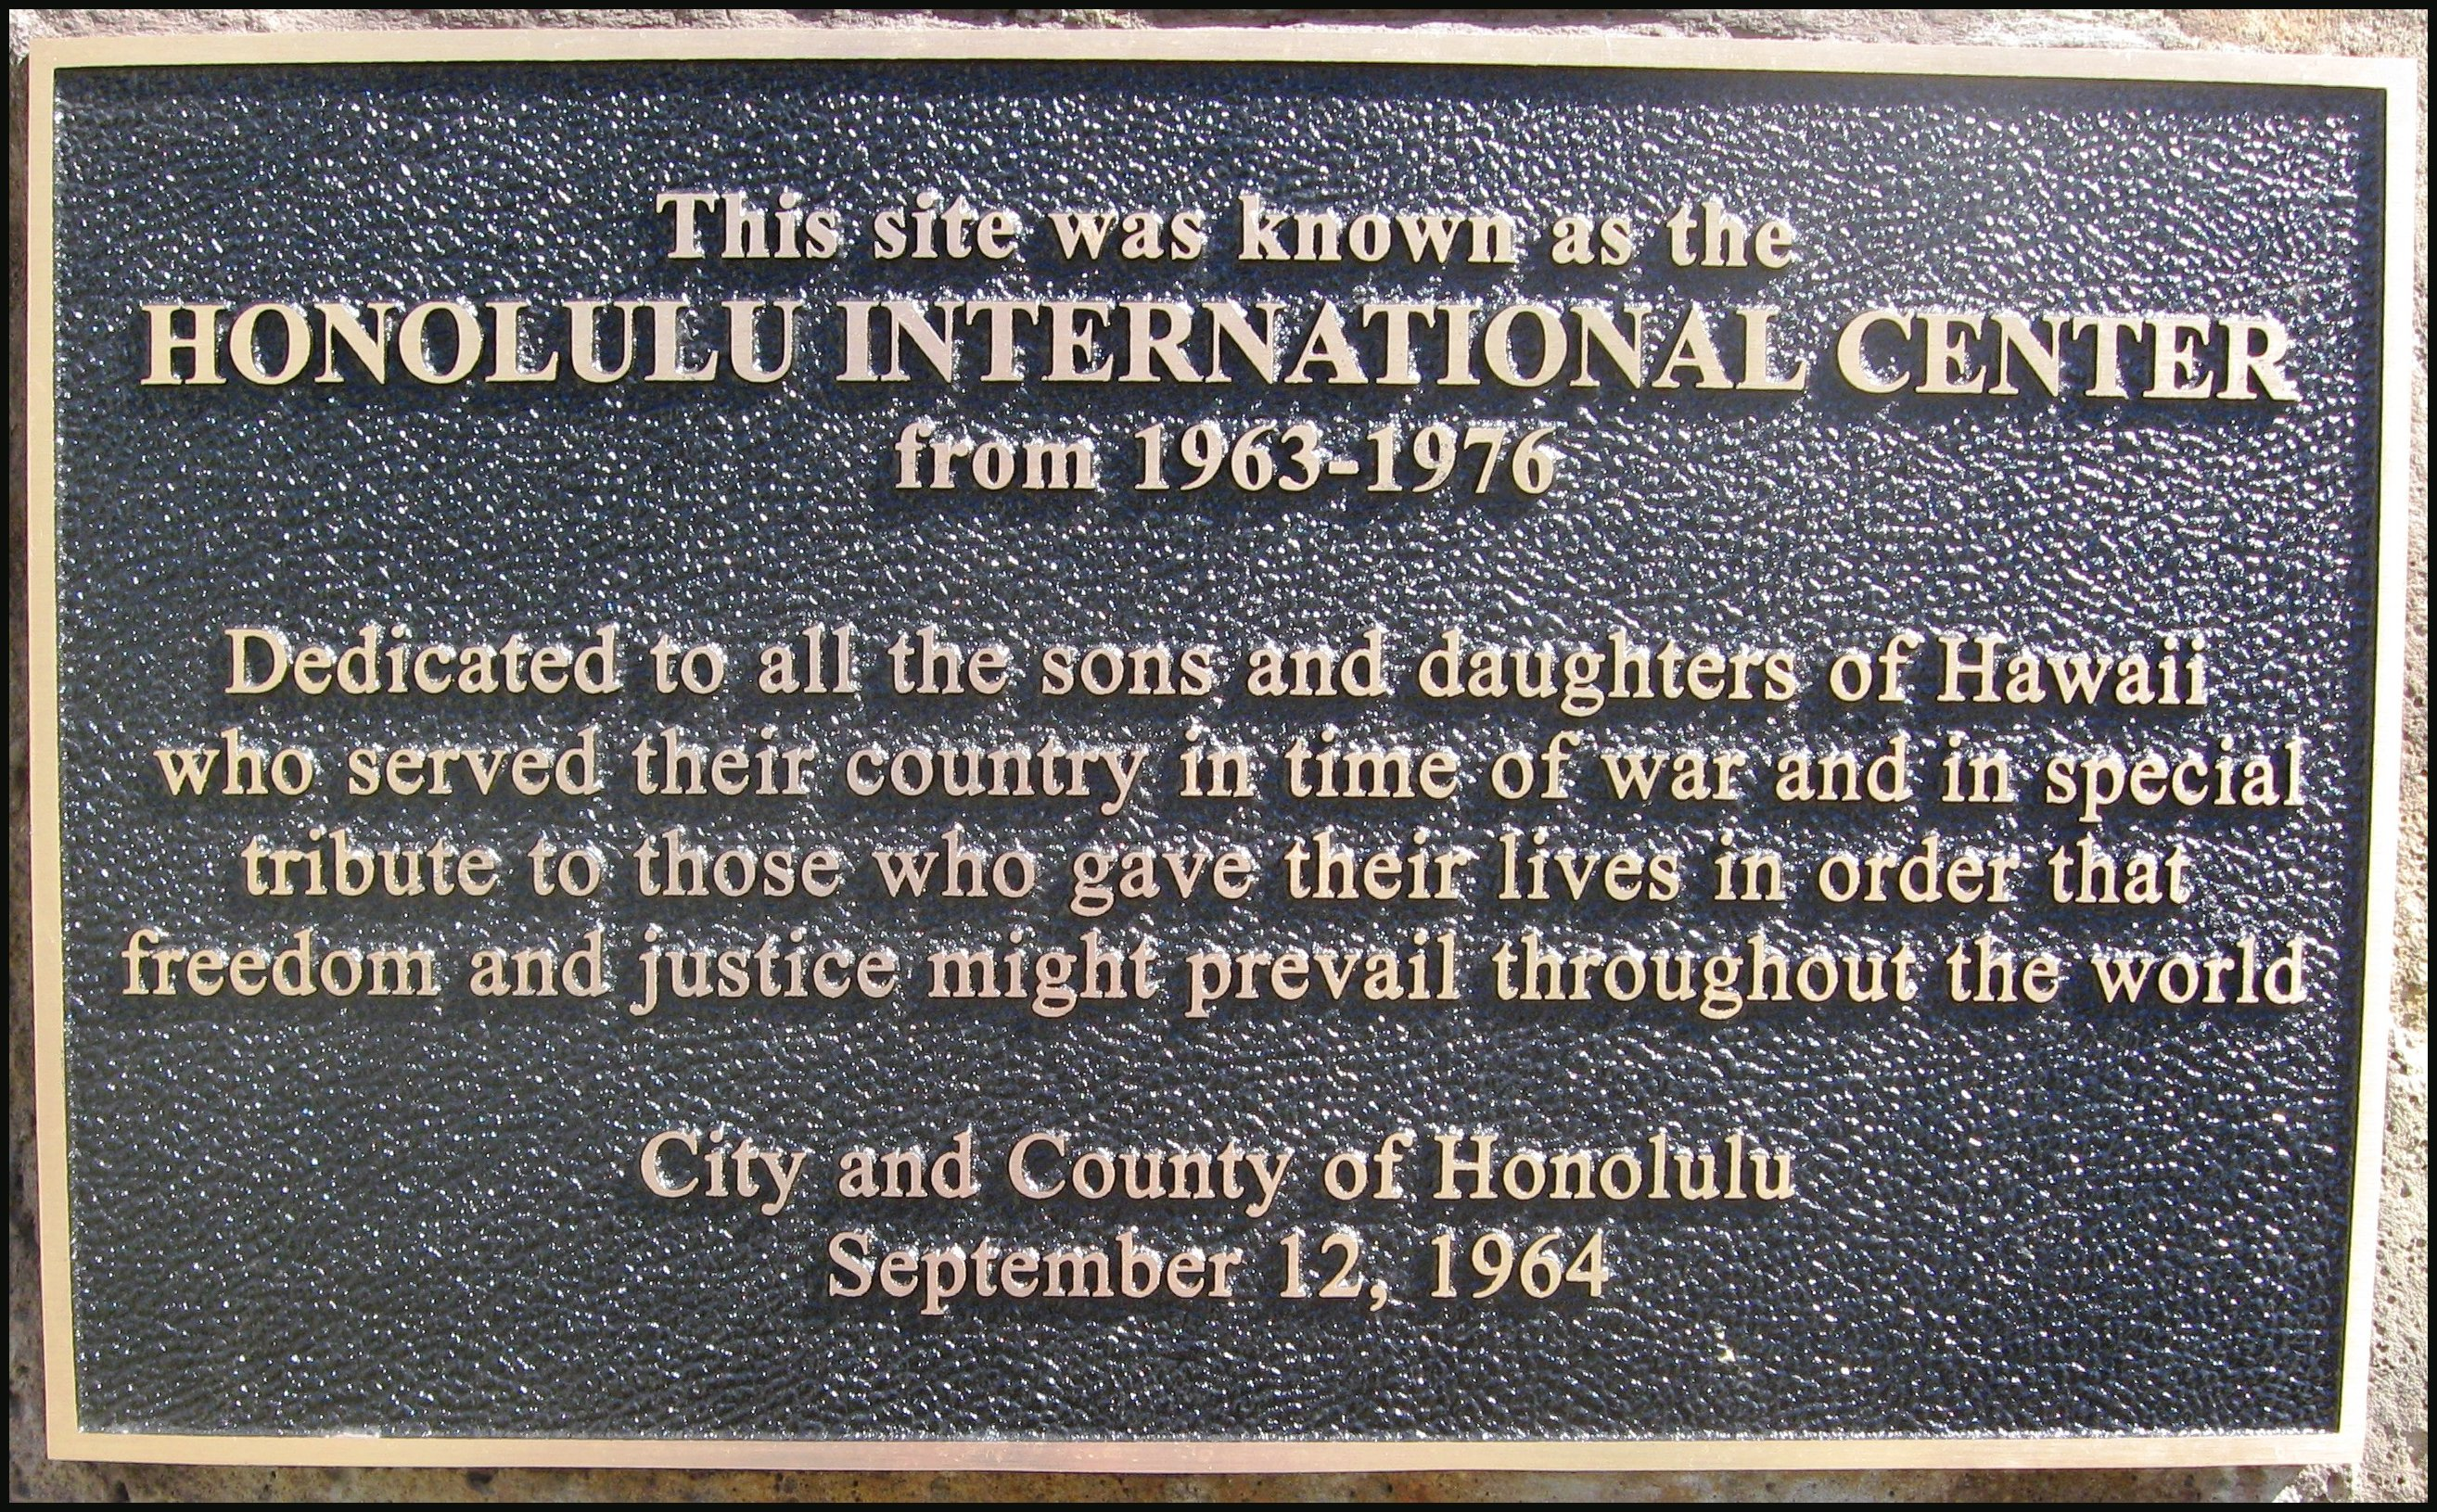 Replacement war memorial plaque at Blaisdell Center. First and second lines were added to original text.